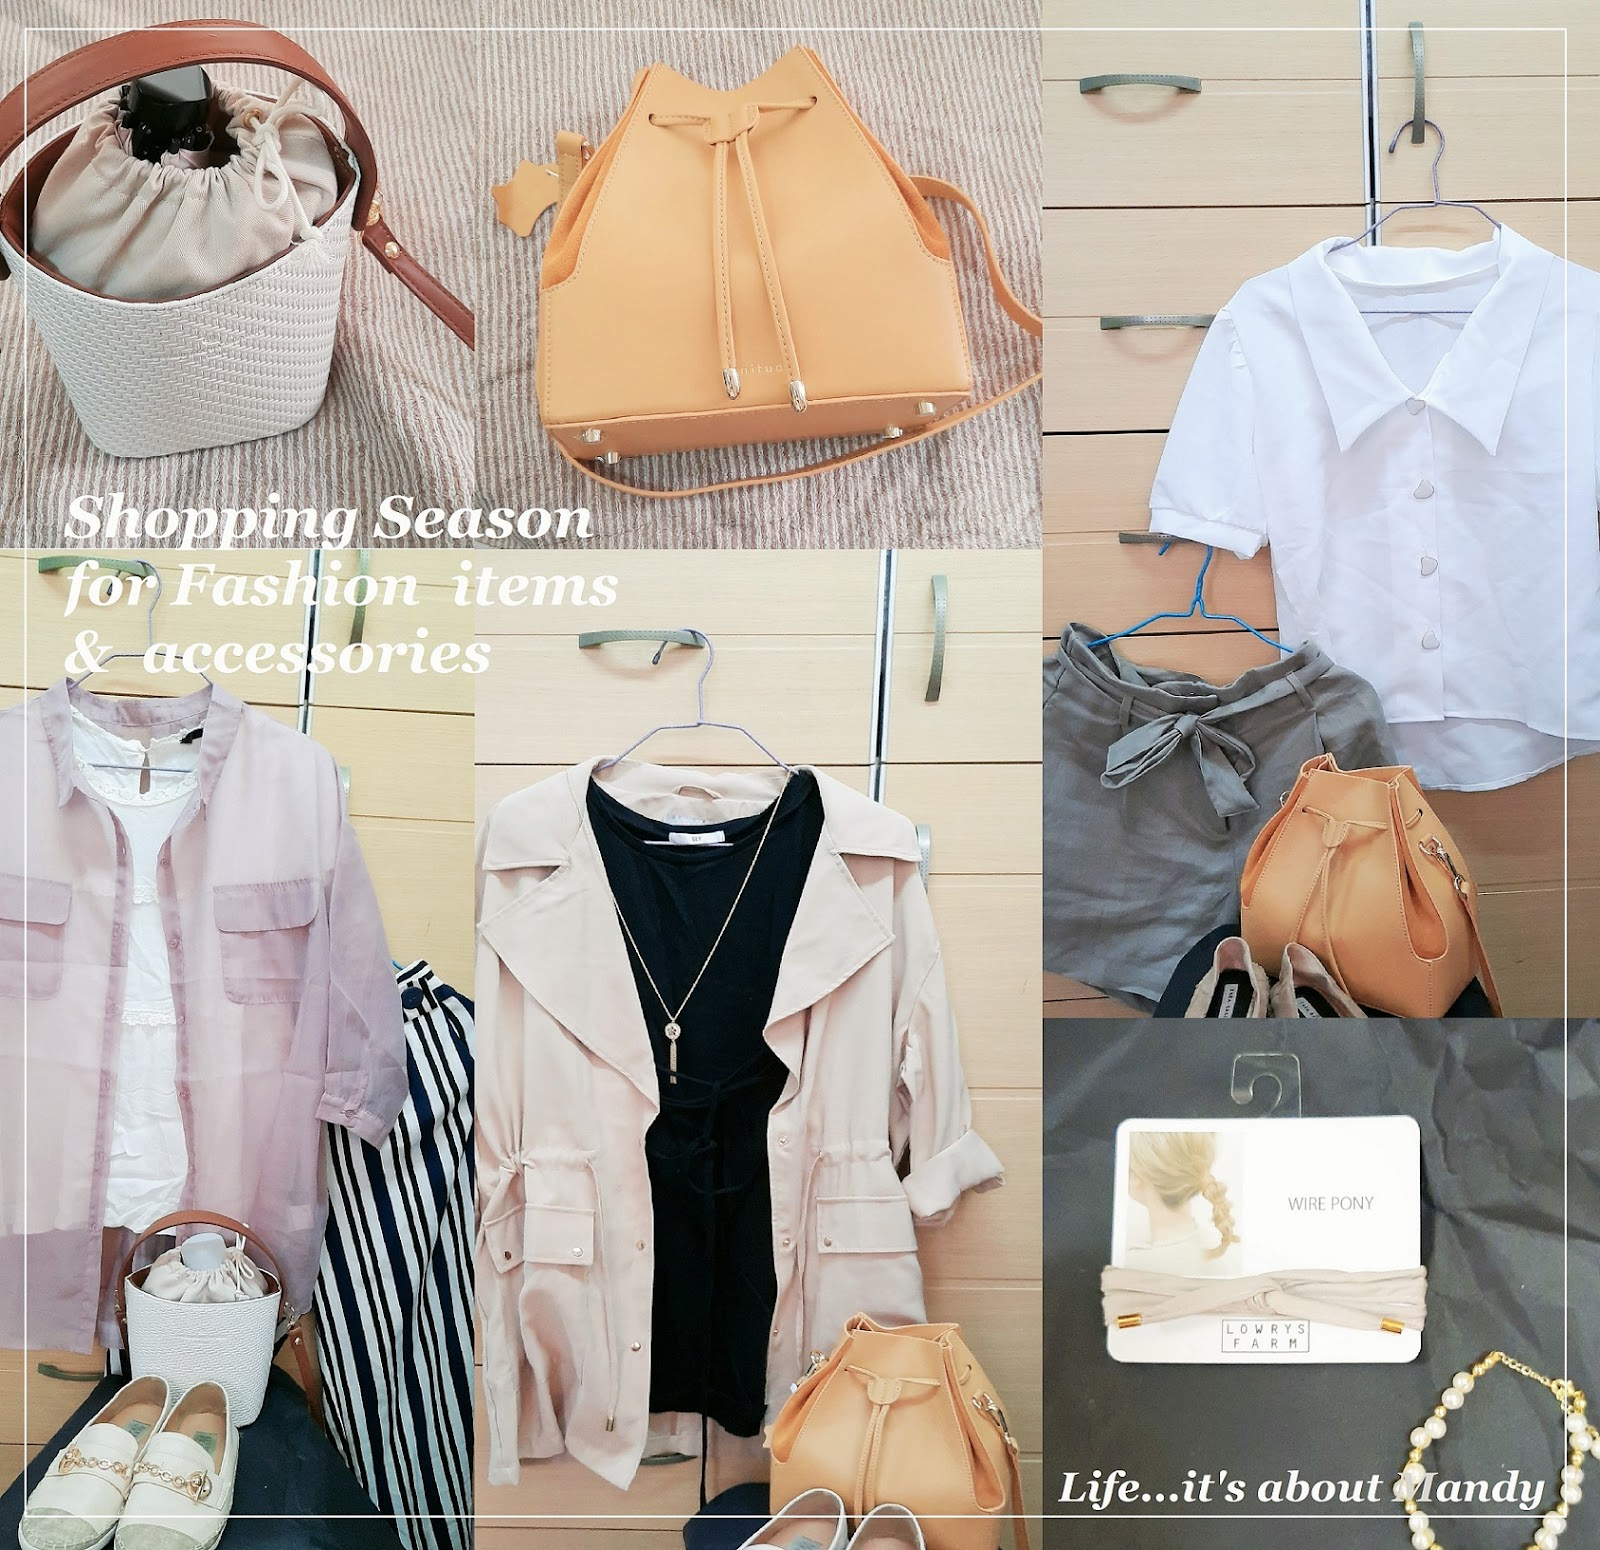 [Shopping / Fashion] 夏末抵買之選~ Heather, KS mall, Pull and Bear, Unitude, Zar ...